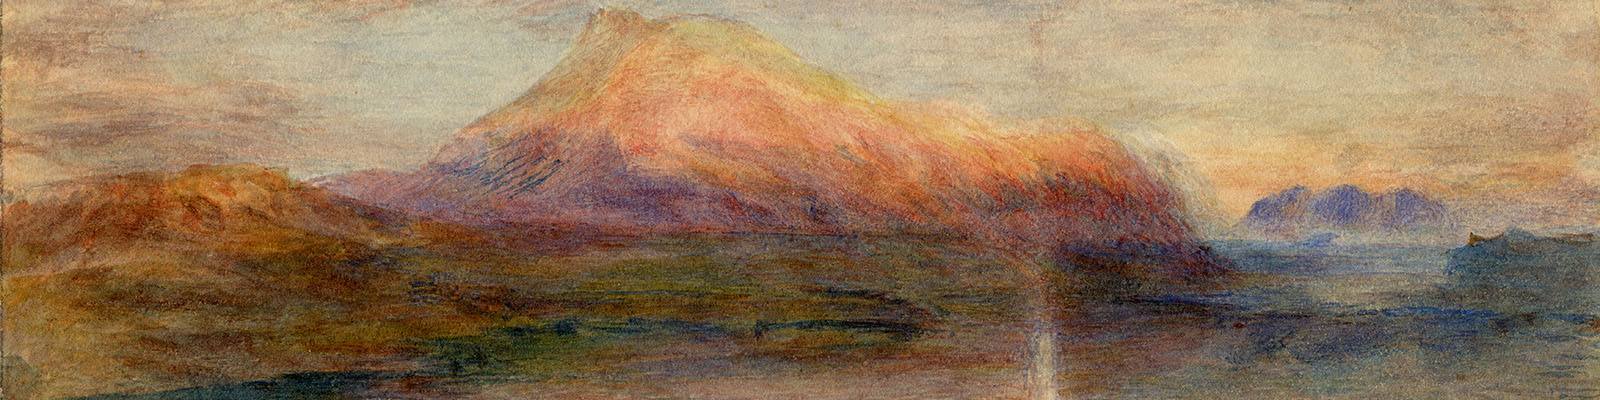 Isabella Jay, The Red Righi, after Turner